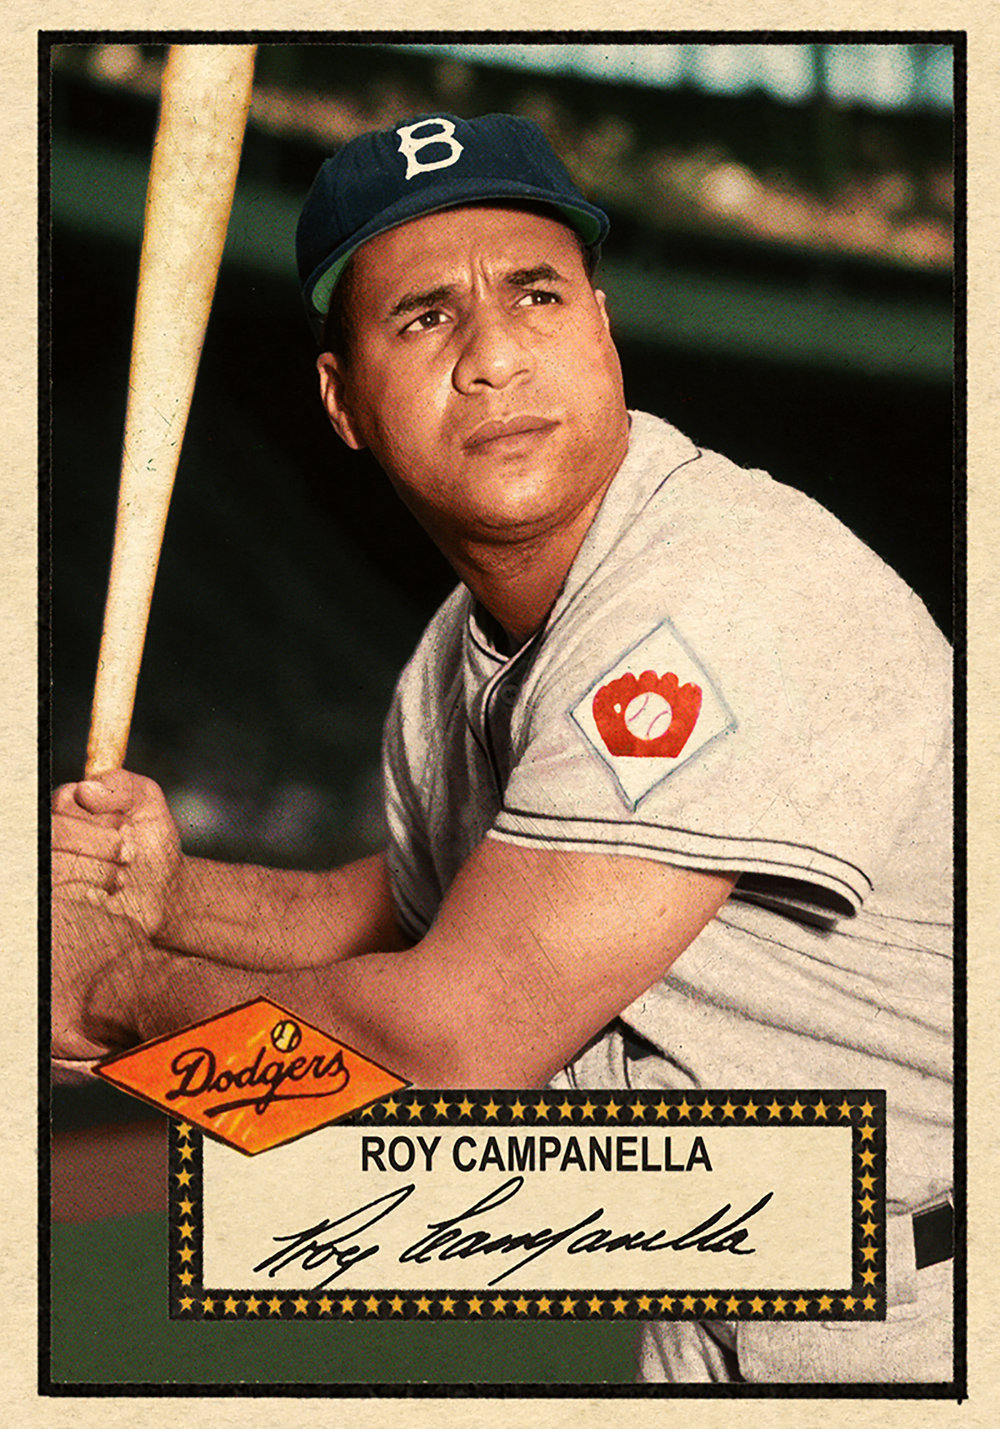 1952 Series #275 ROY CAMPANELLA - I just love my Campanella cards. This image was from the summer of '51. Great care was taken to match Roy's soft skin tone and dark eyebrows. SOLD FOR  200.50 USD, December 2017